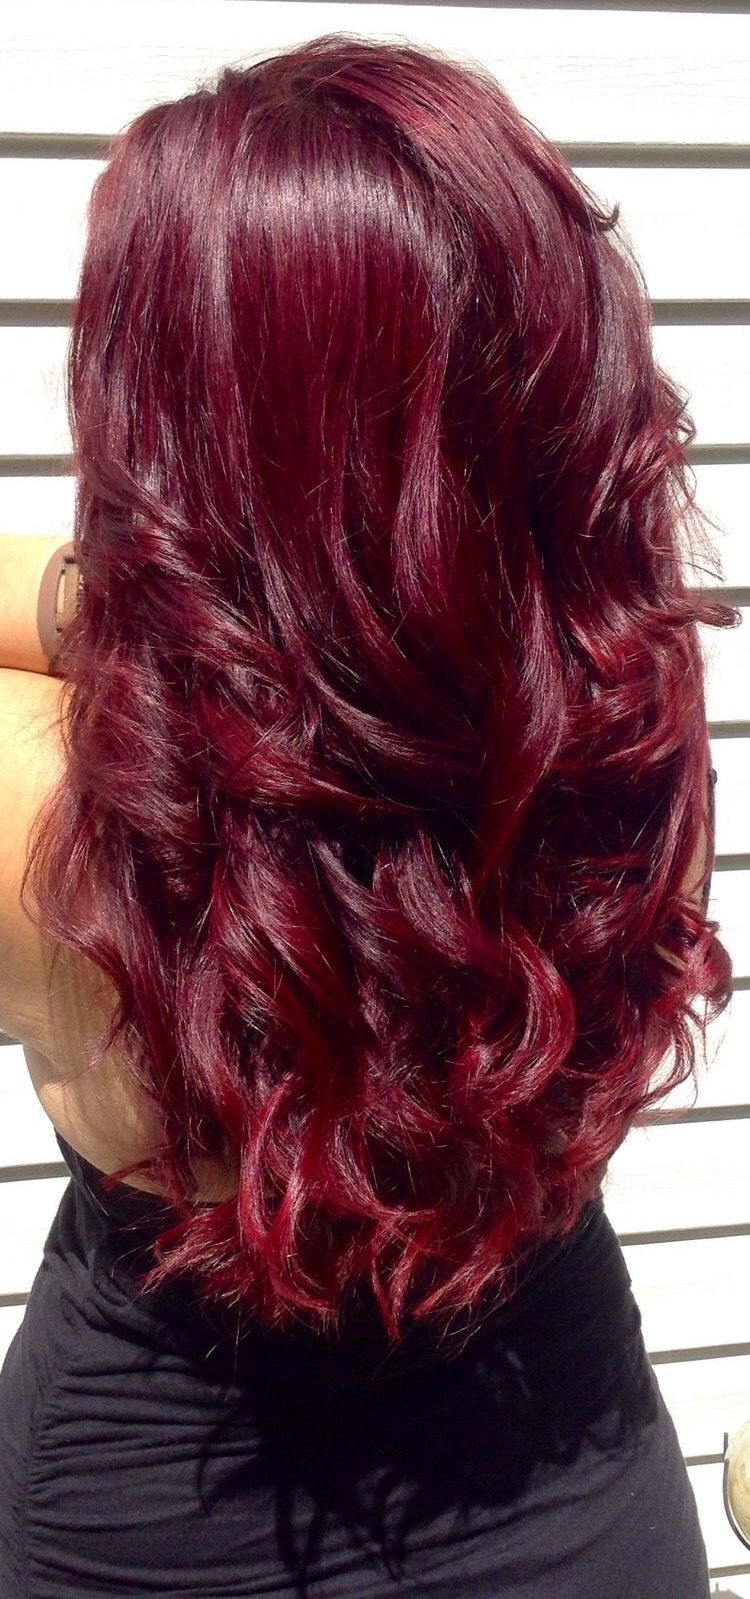 Pin By Ri W On Pretty Colorful Hair Pinterest Hair Coloring